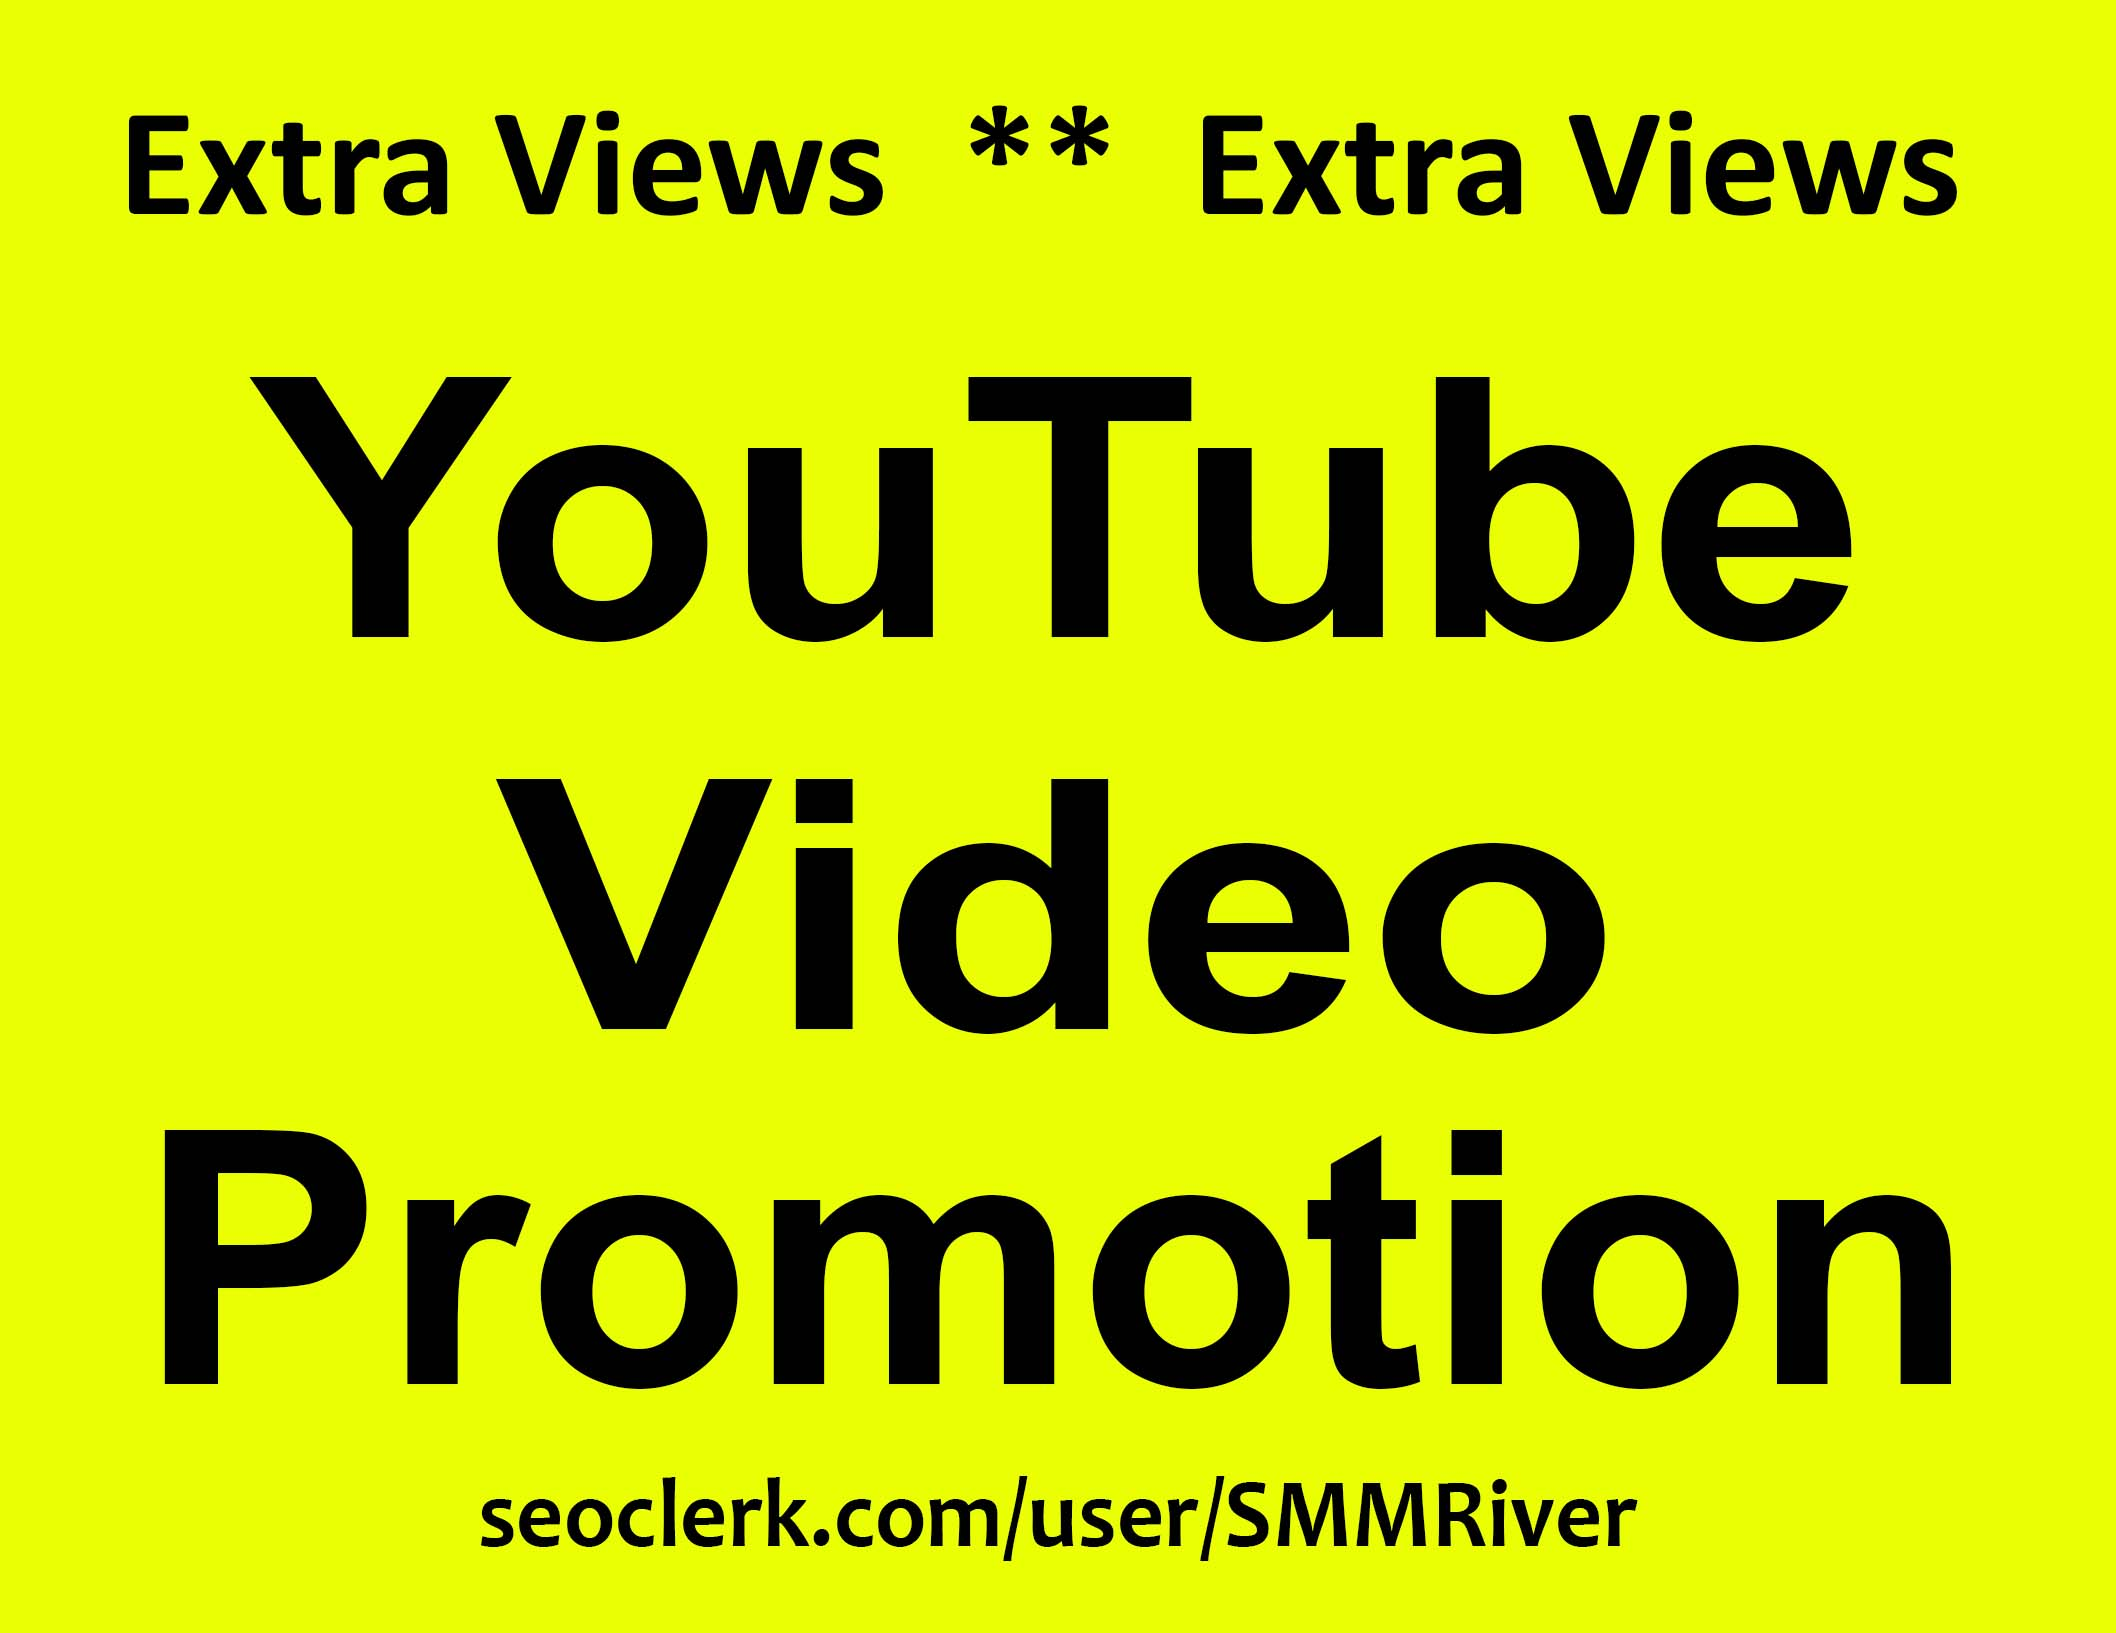 YouTube-Video-SEO-Ranking-Page-1-On-Google-Top-Results-Guarantee-2019